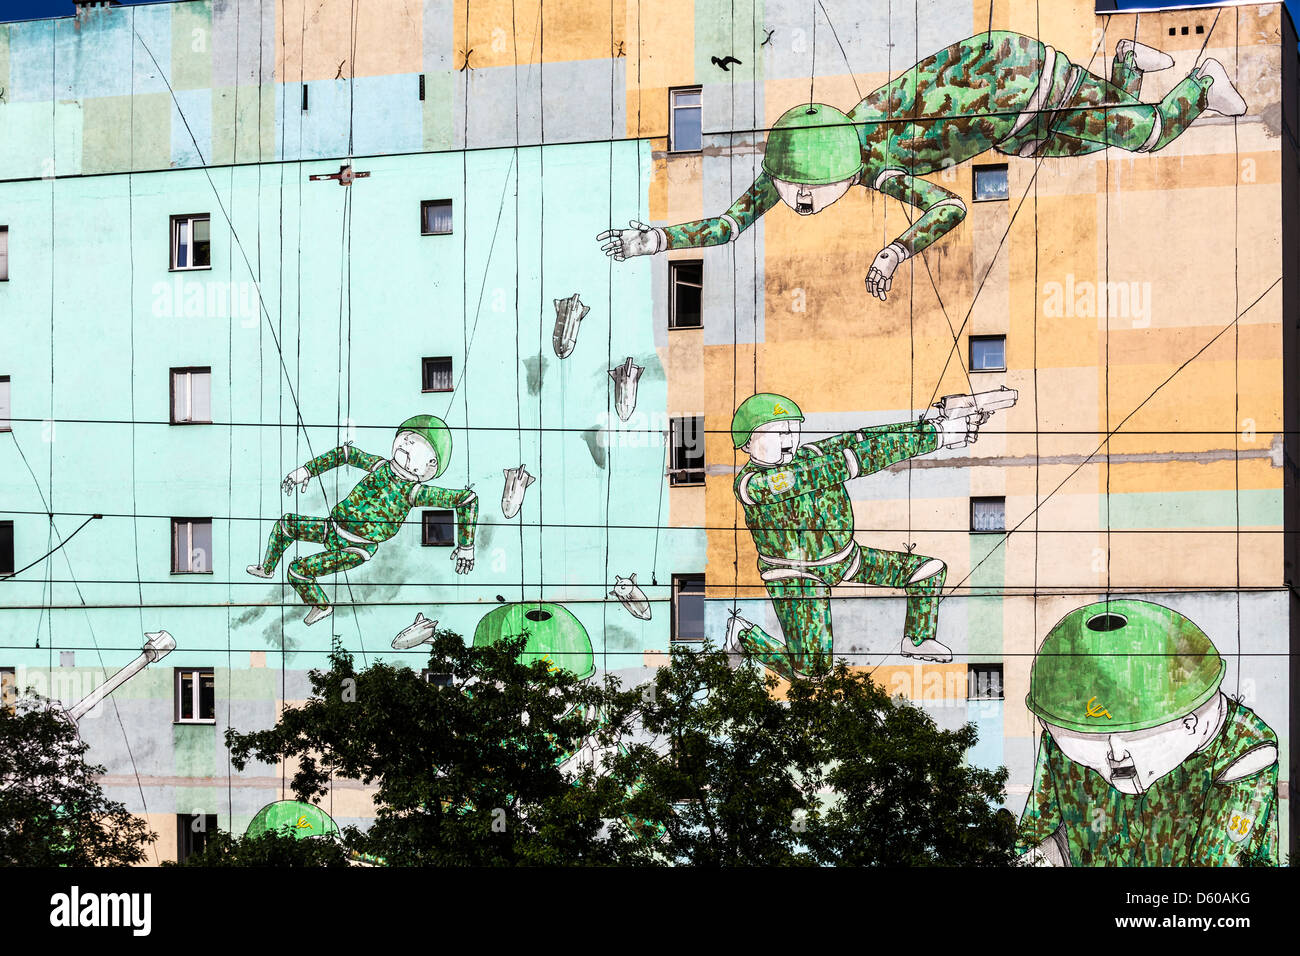 Part of an anti-war mural by Italian artist Blu in Warsaw, Poland. - Stock Image